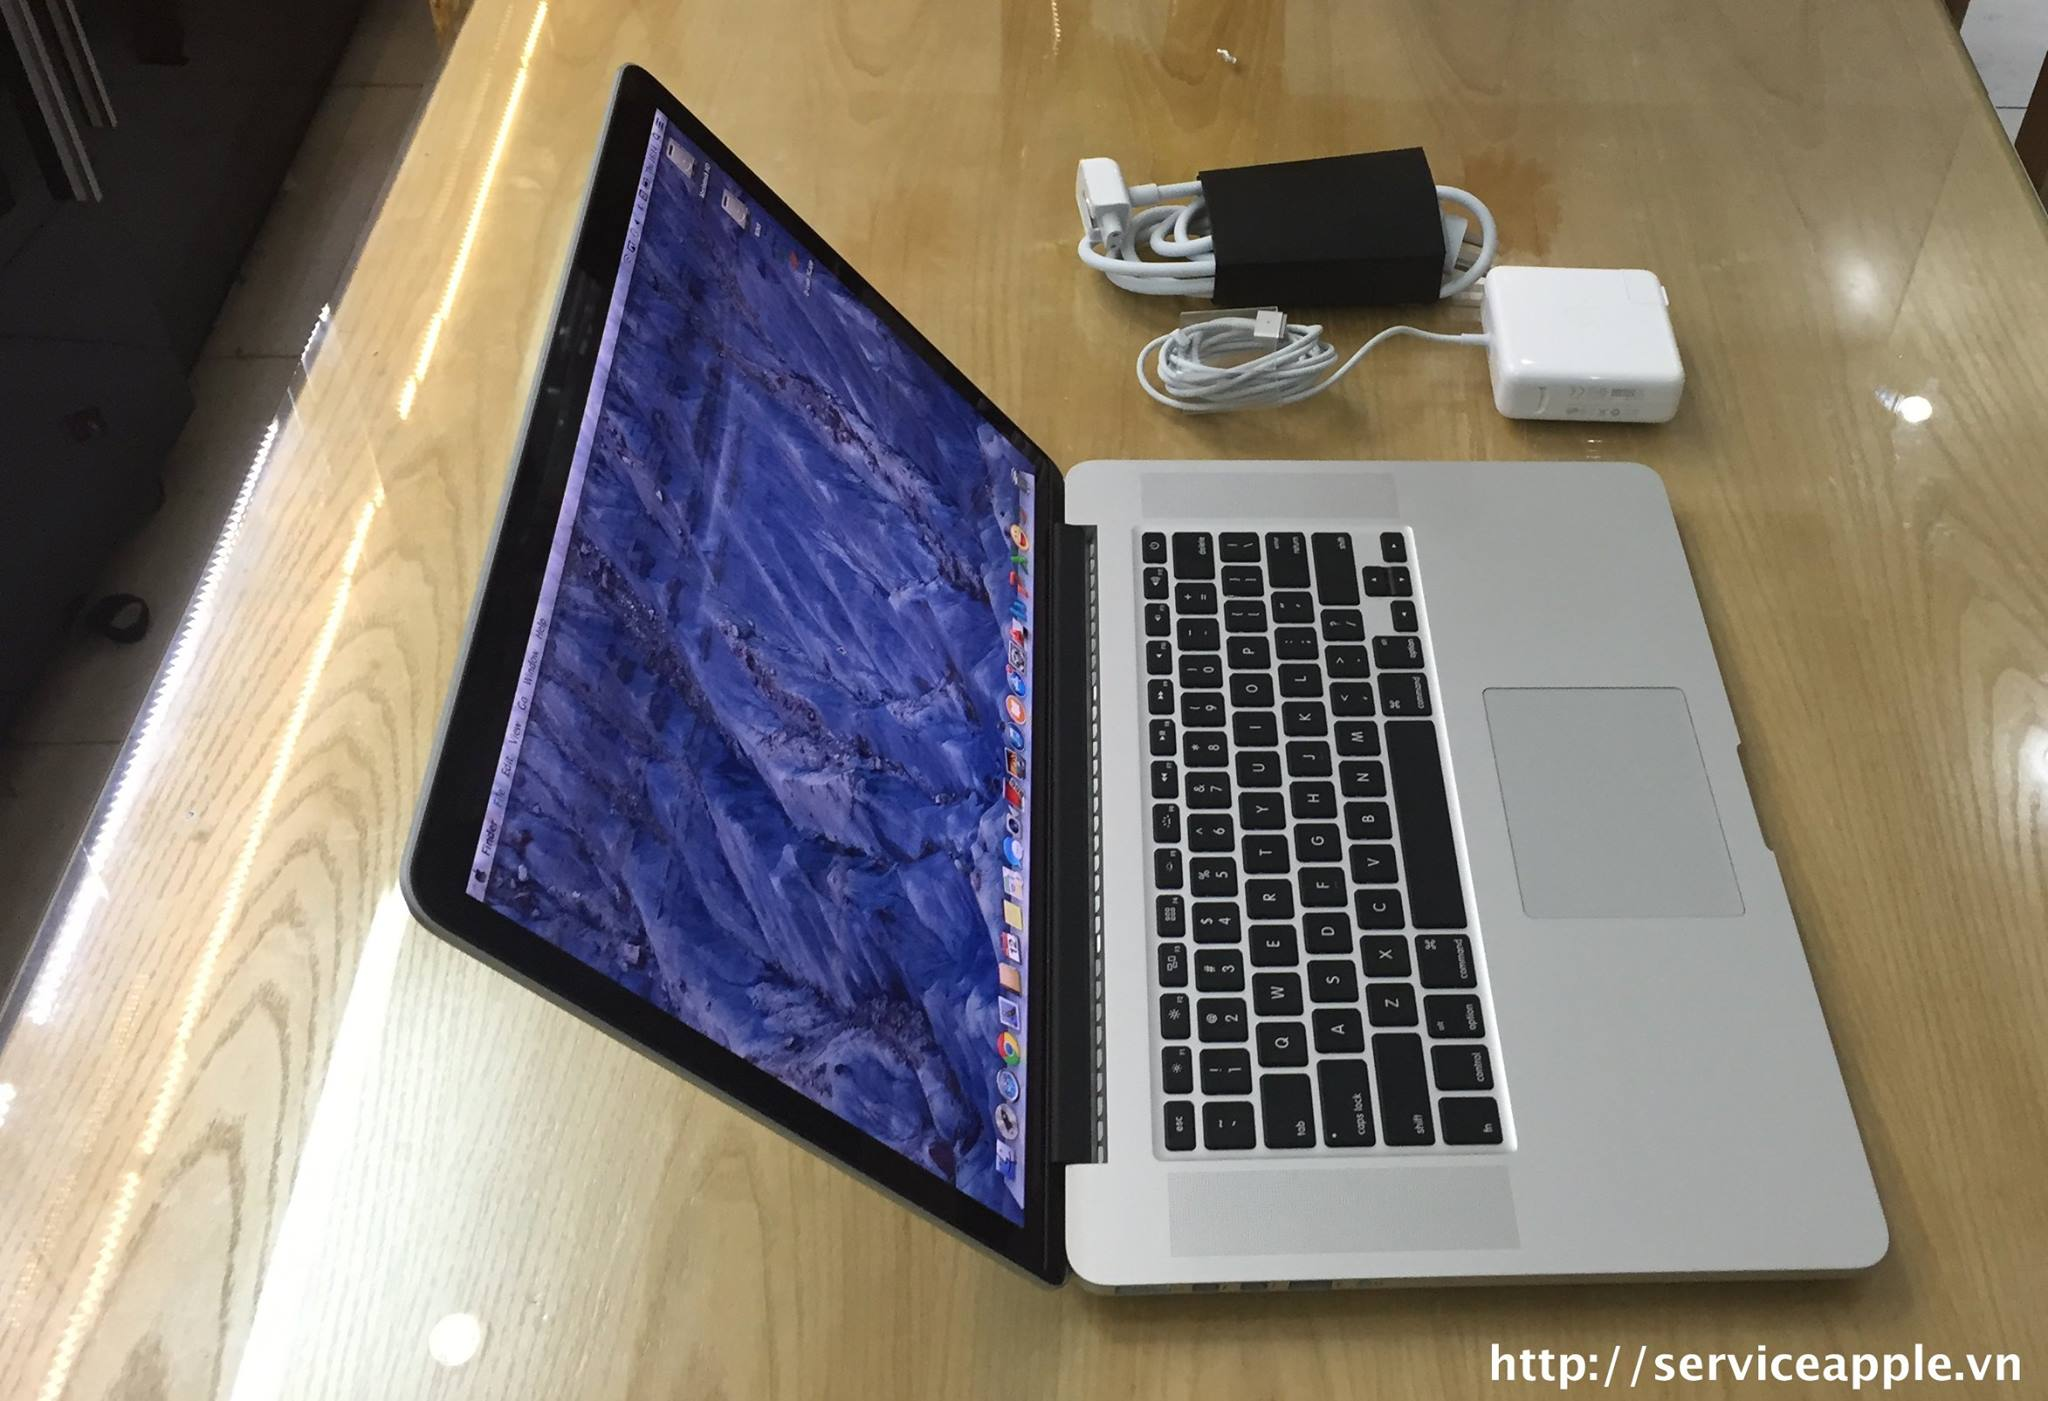 Macbook Pro Retina MC976 Full Option_3.jpg